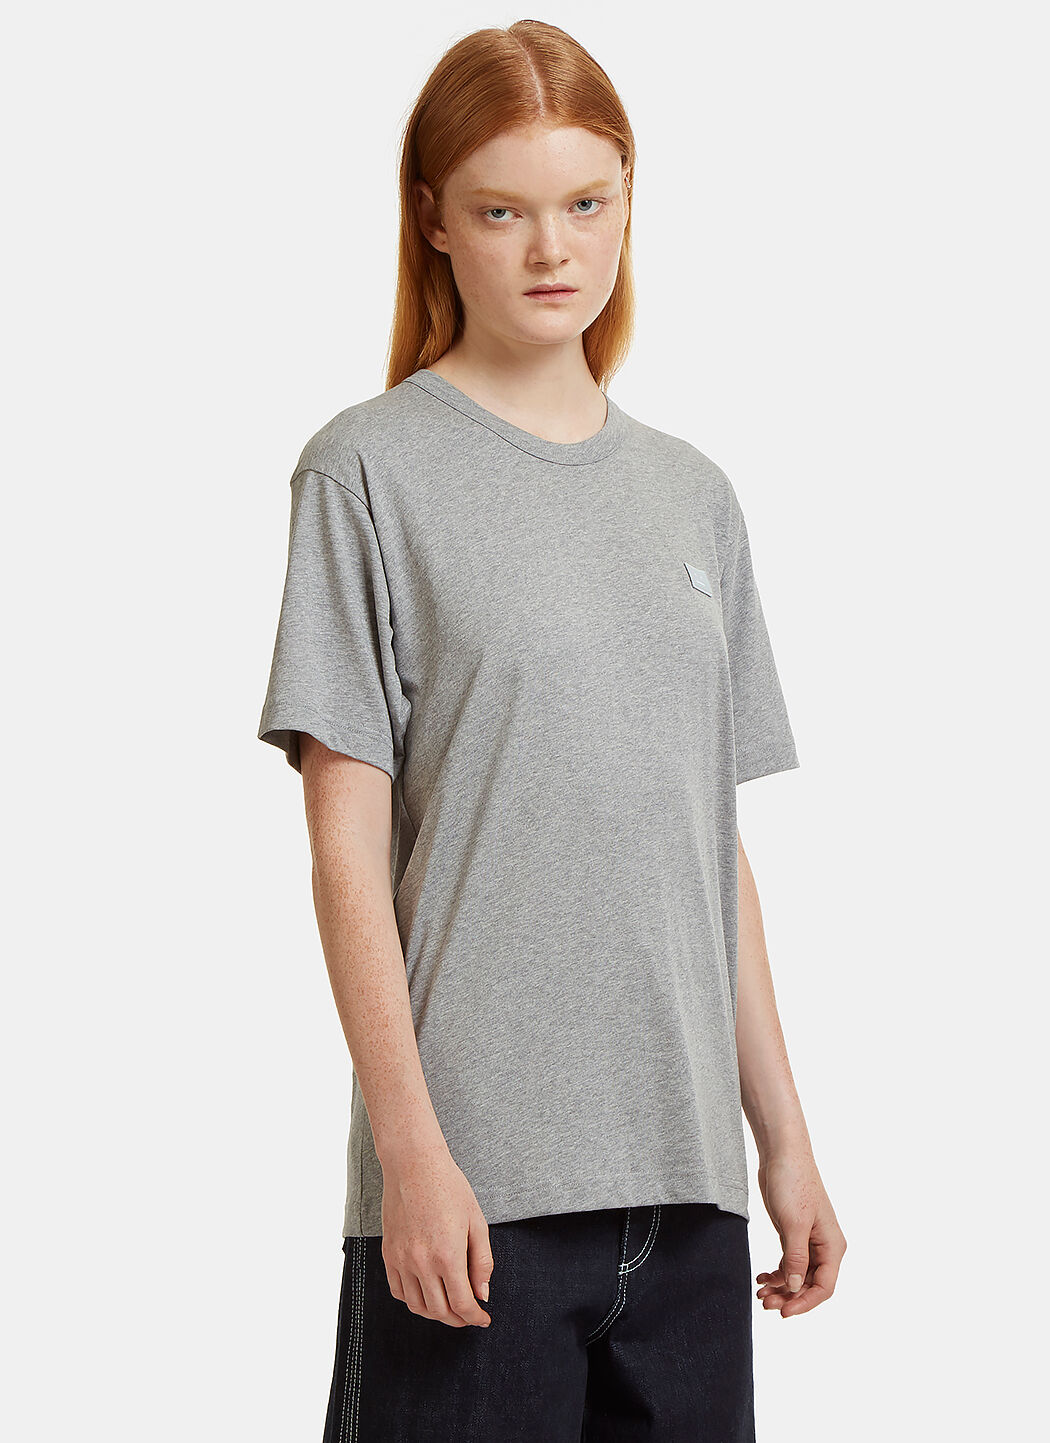 Acne Nash Face Embroidered T-Shirt